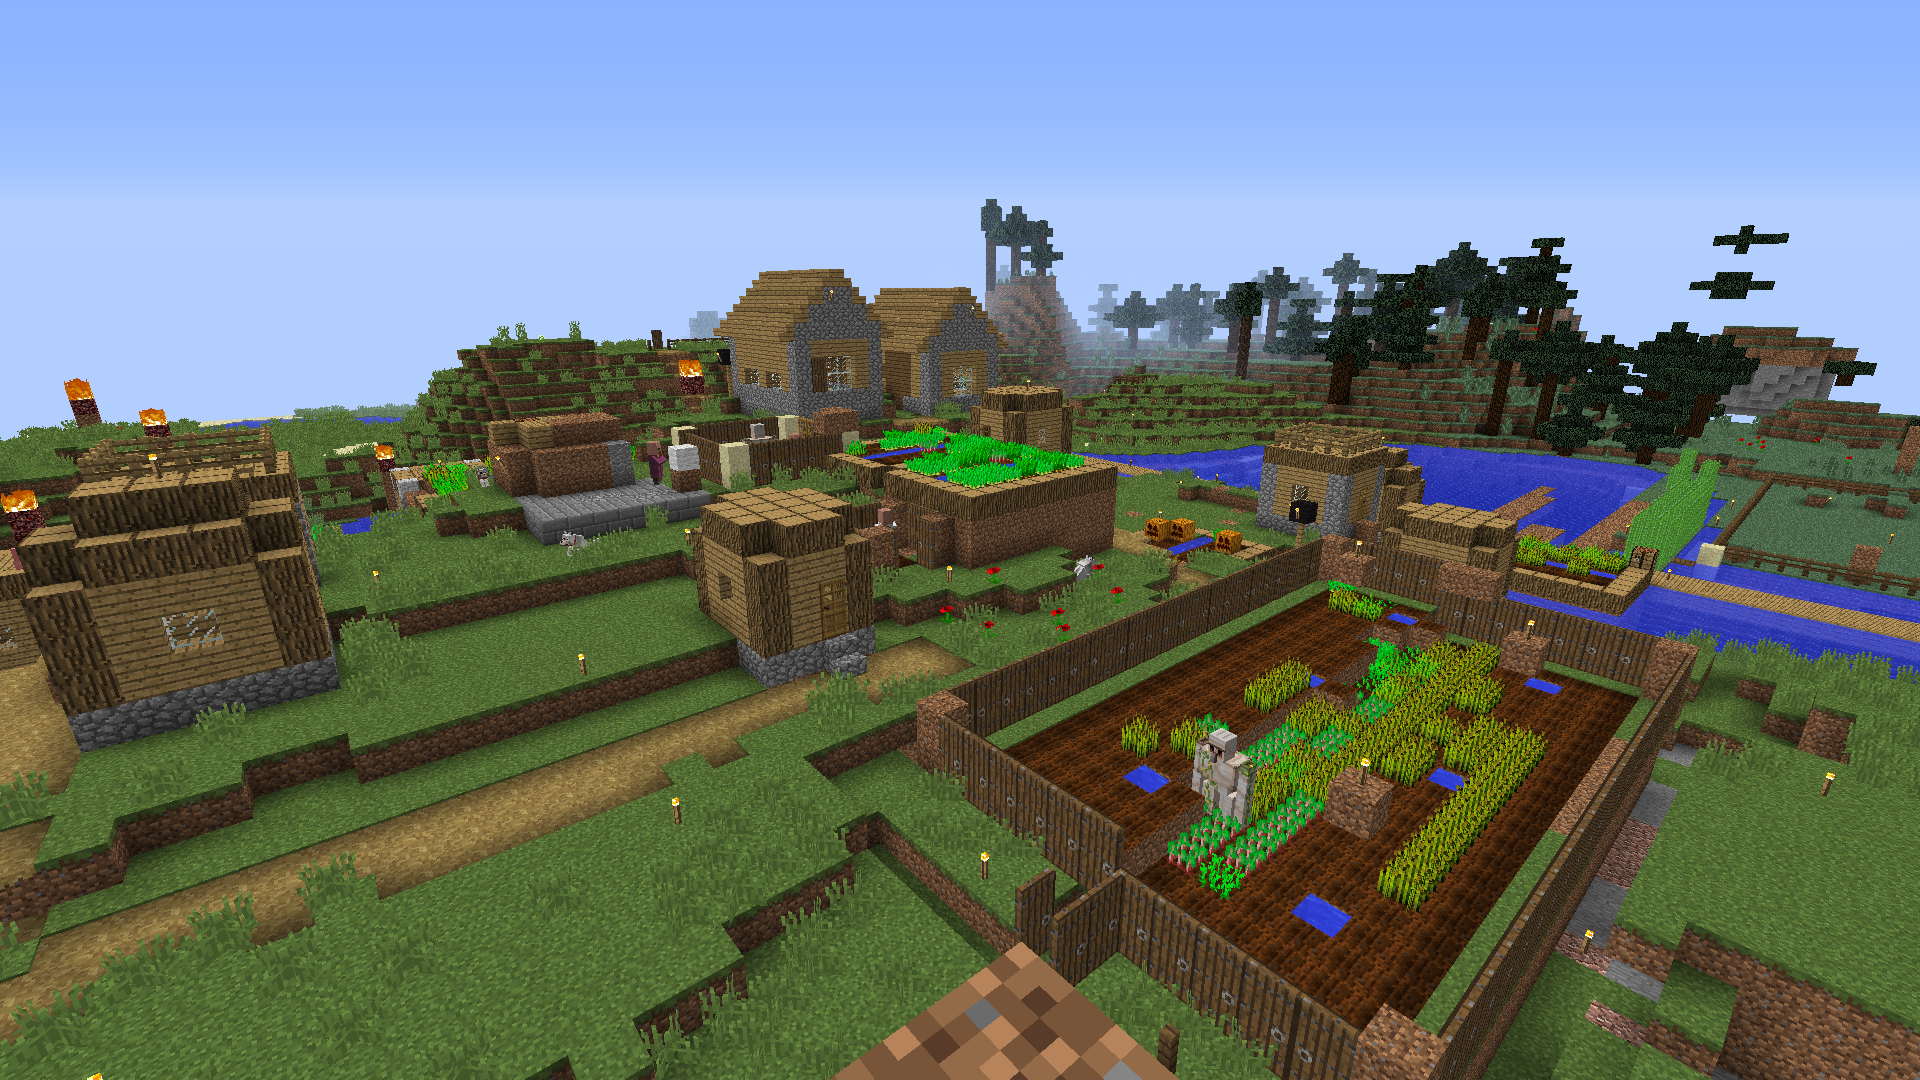 How do villagers breed? - Discussion - Minecraft: Java Edition